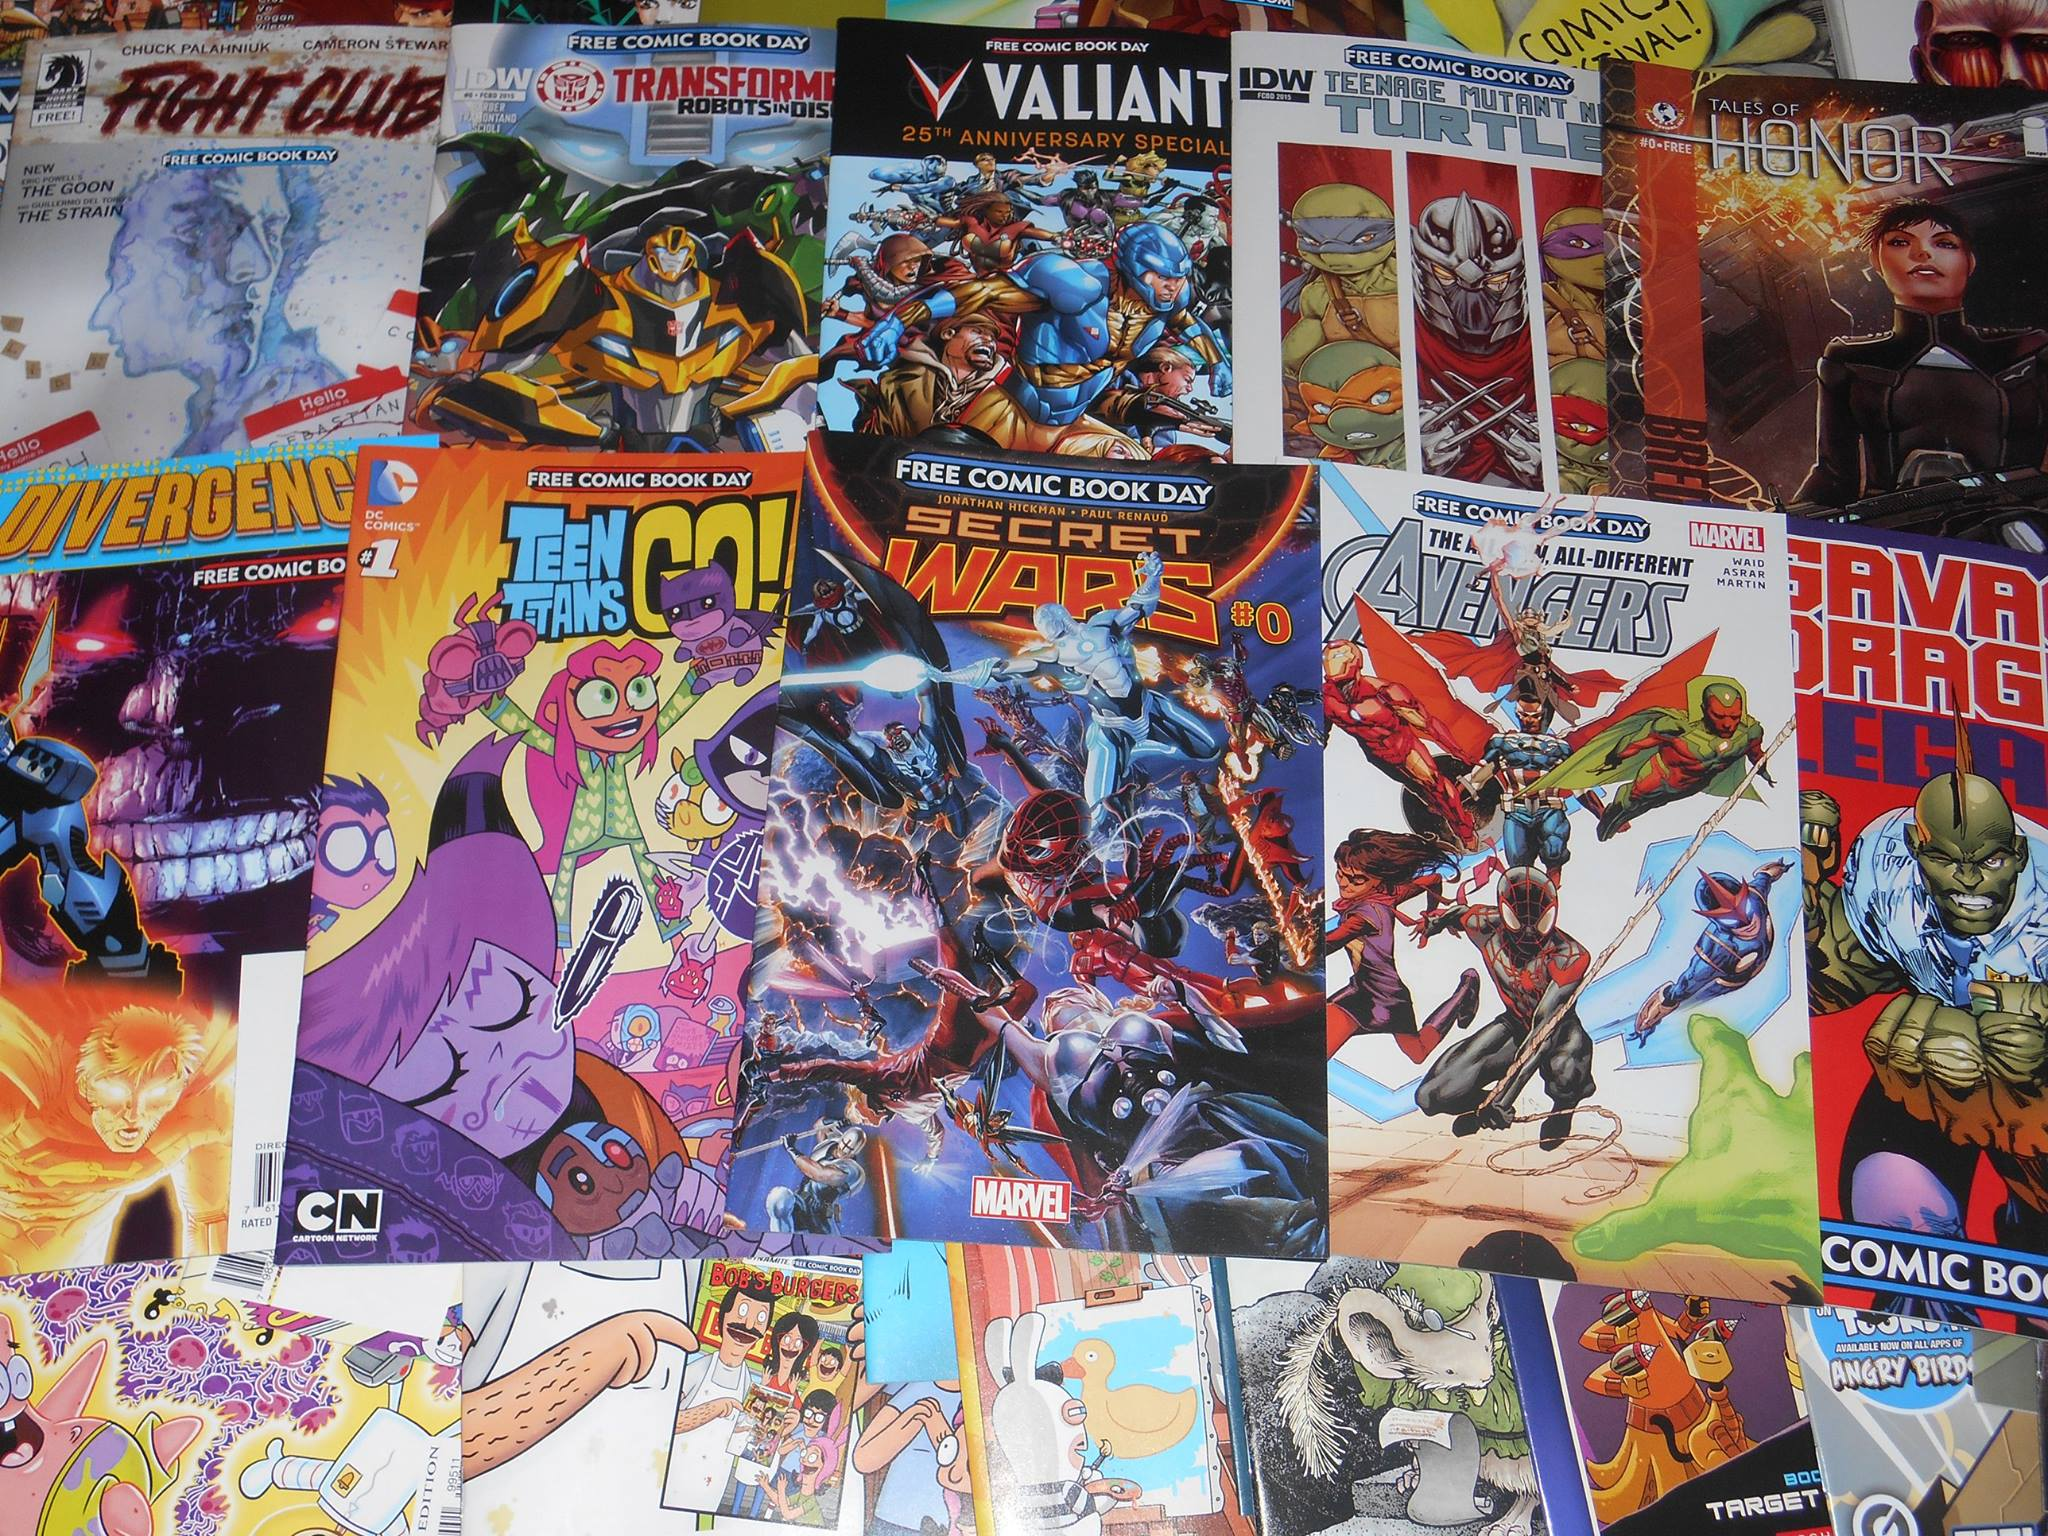 free comic book day - valiant - tmnt - transformers